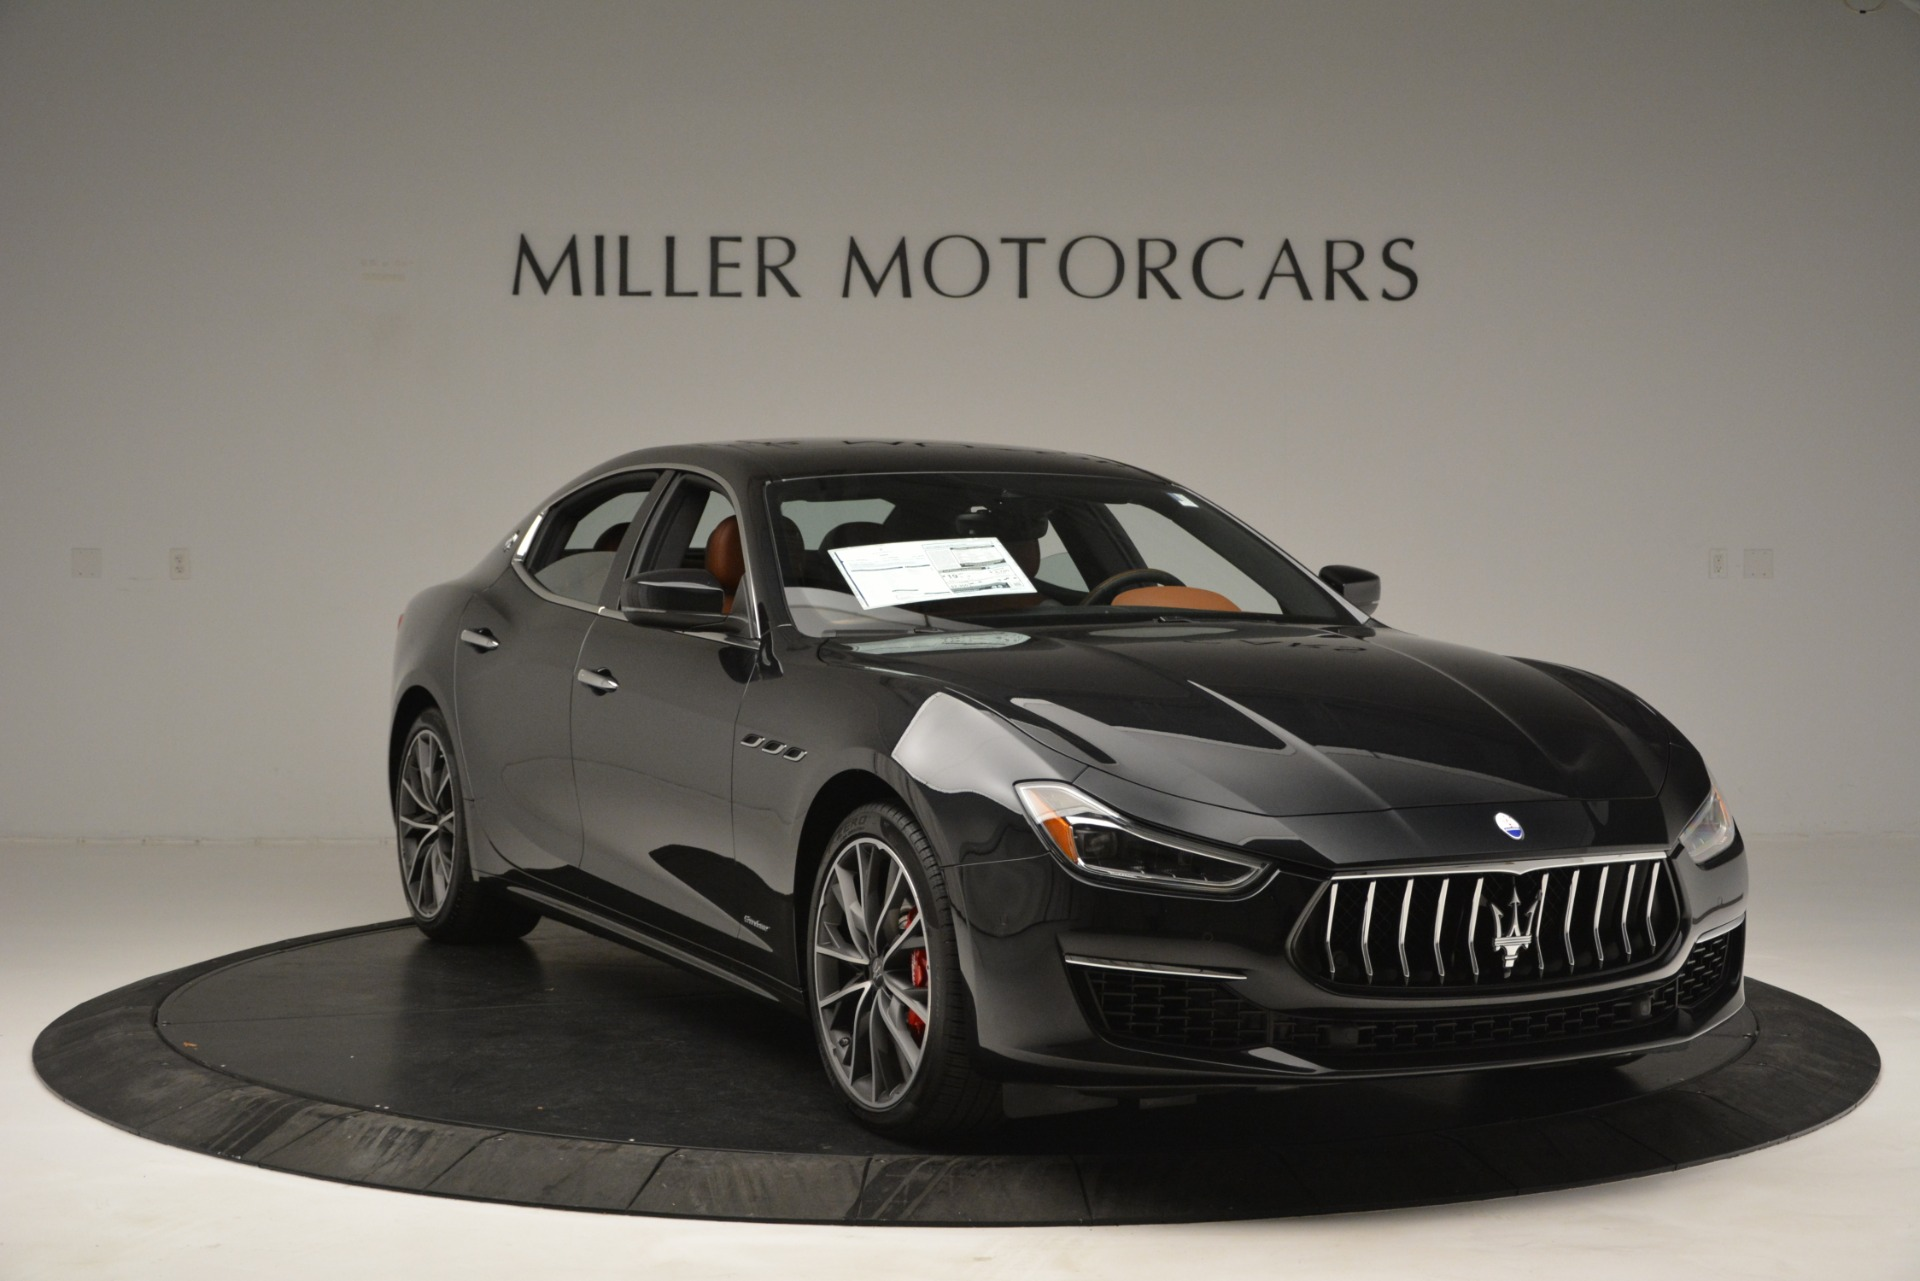 New 2019 Maserati Ghibli S Q4 GranLusso For Sale In Westport, CT 2589_p11